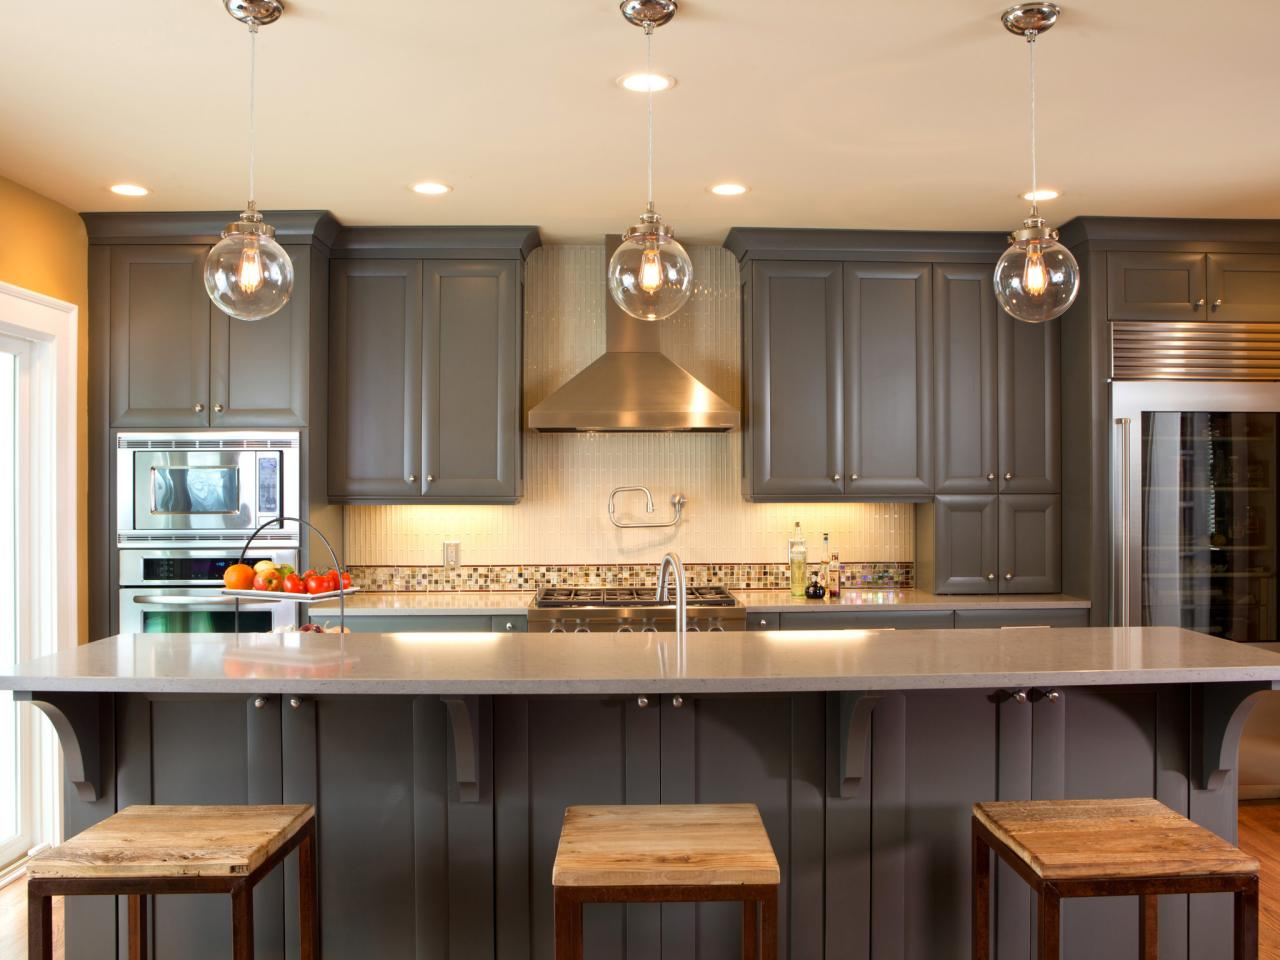 Paint Your Kitchen Cabinets Ideas For Painting Kitchen Cabinets Pictures From Hgtv Hgtv